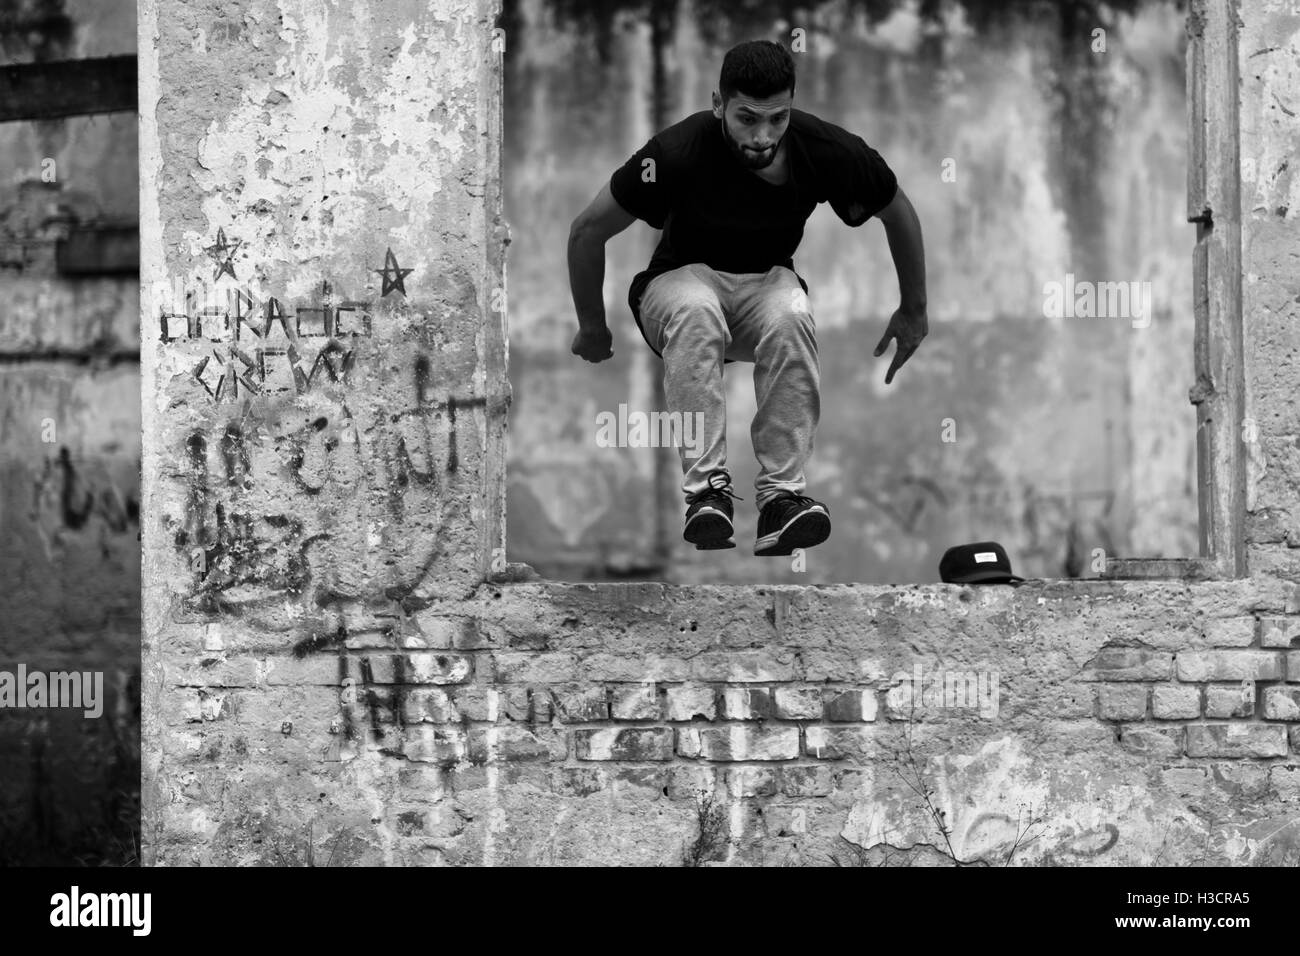 A Colombian parkour runner performs a jump over an obstacle during a training of Plus Parkour team in Bogotá, - Stock Image